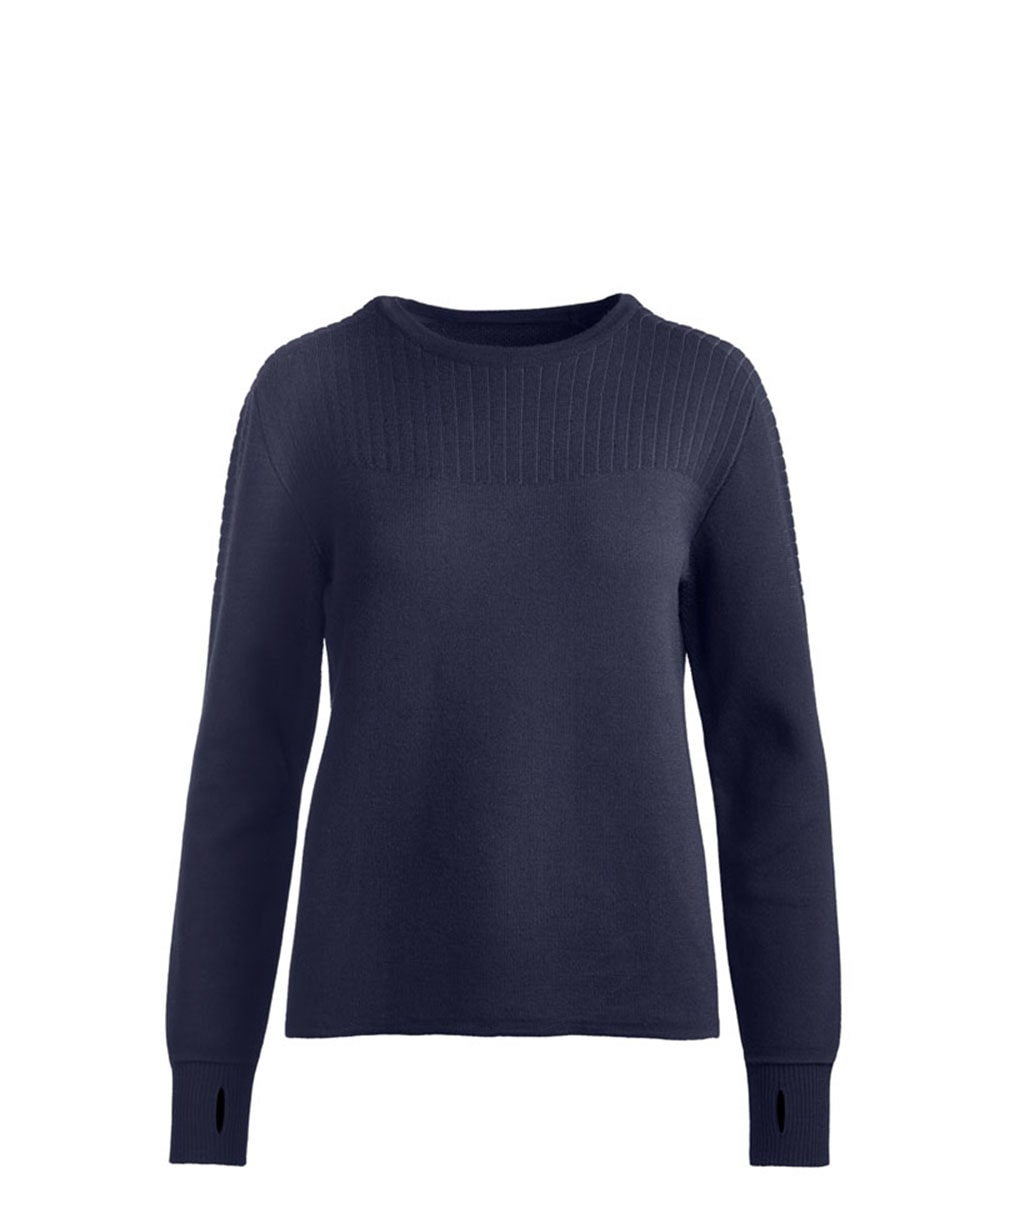 ELMVALE CREW NECK SWEATER